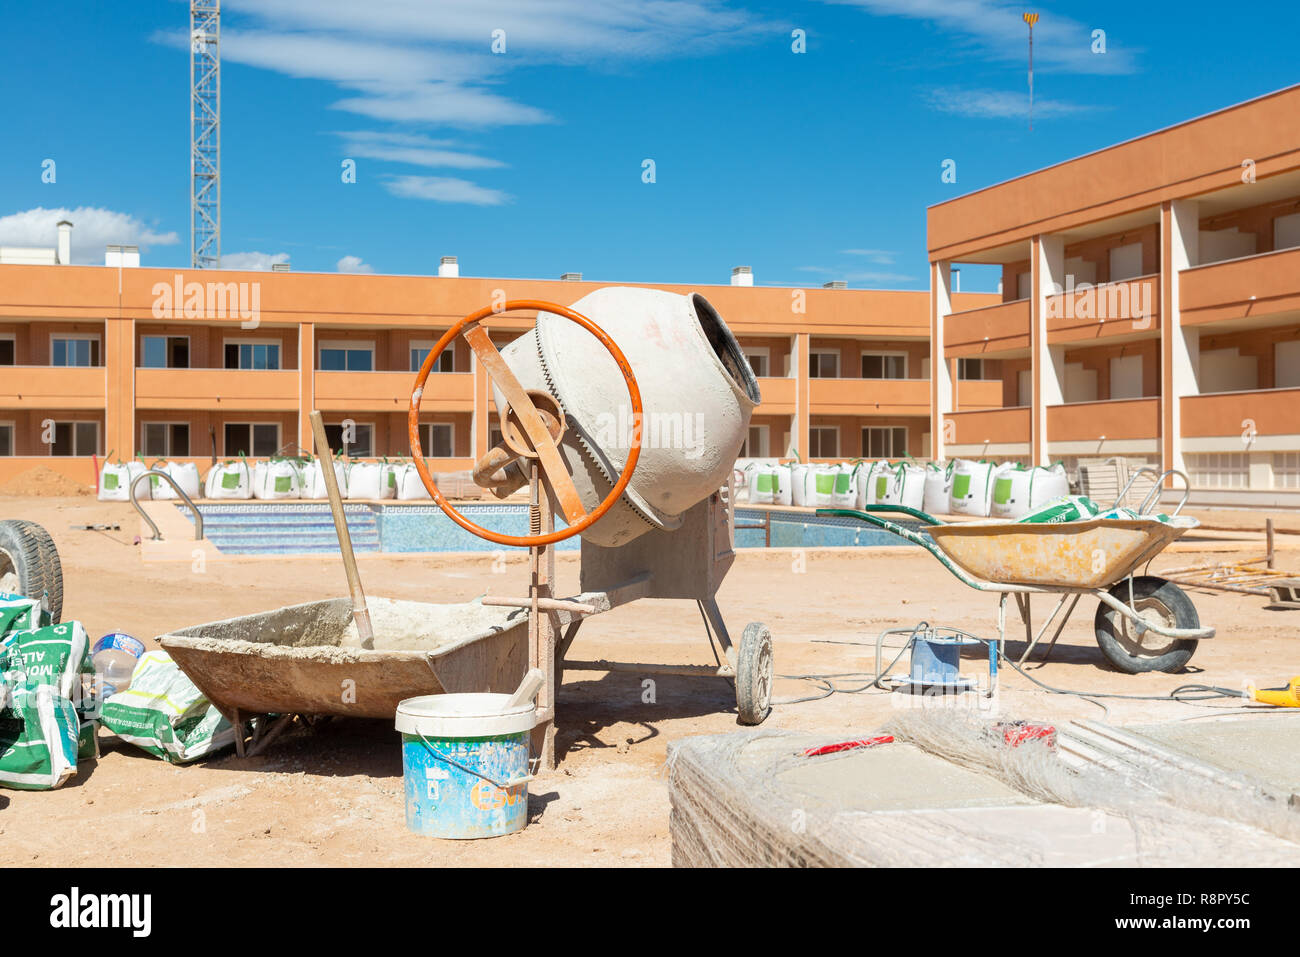 Unfinished property development under construction in new town of Gran Alacant close to Alicante, Costa Blanca, Spain Stock Photo